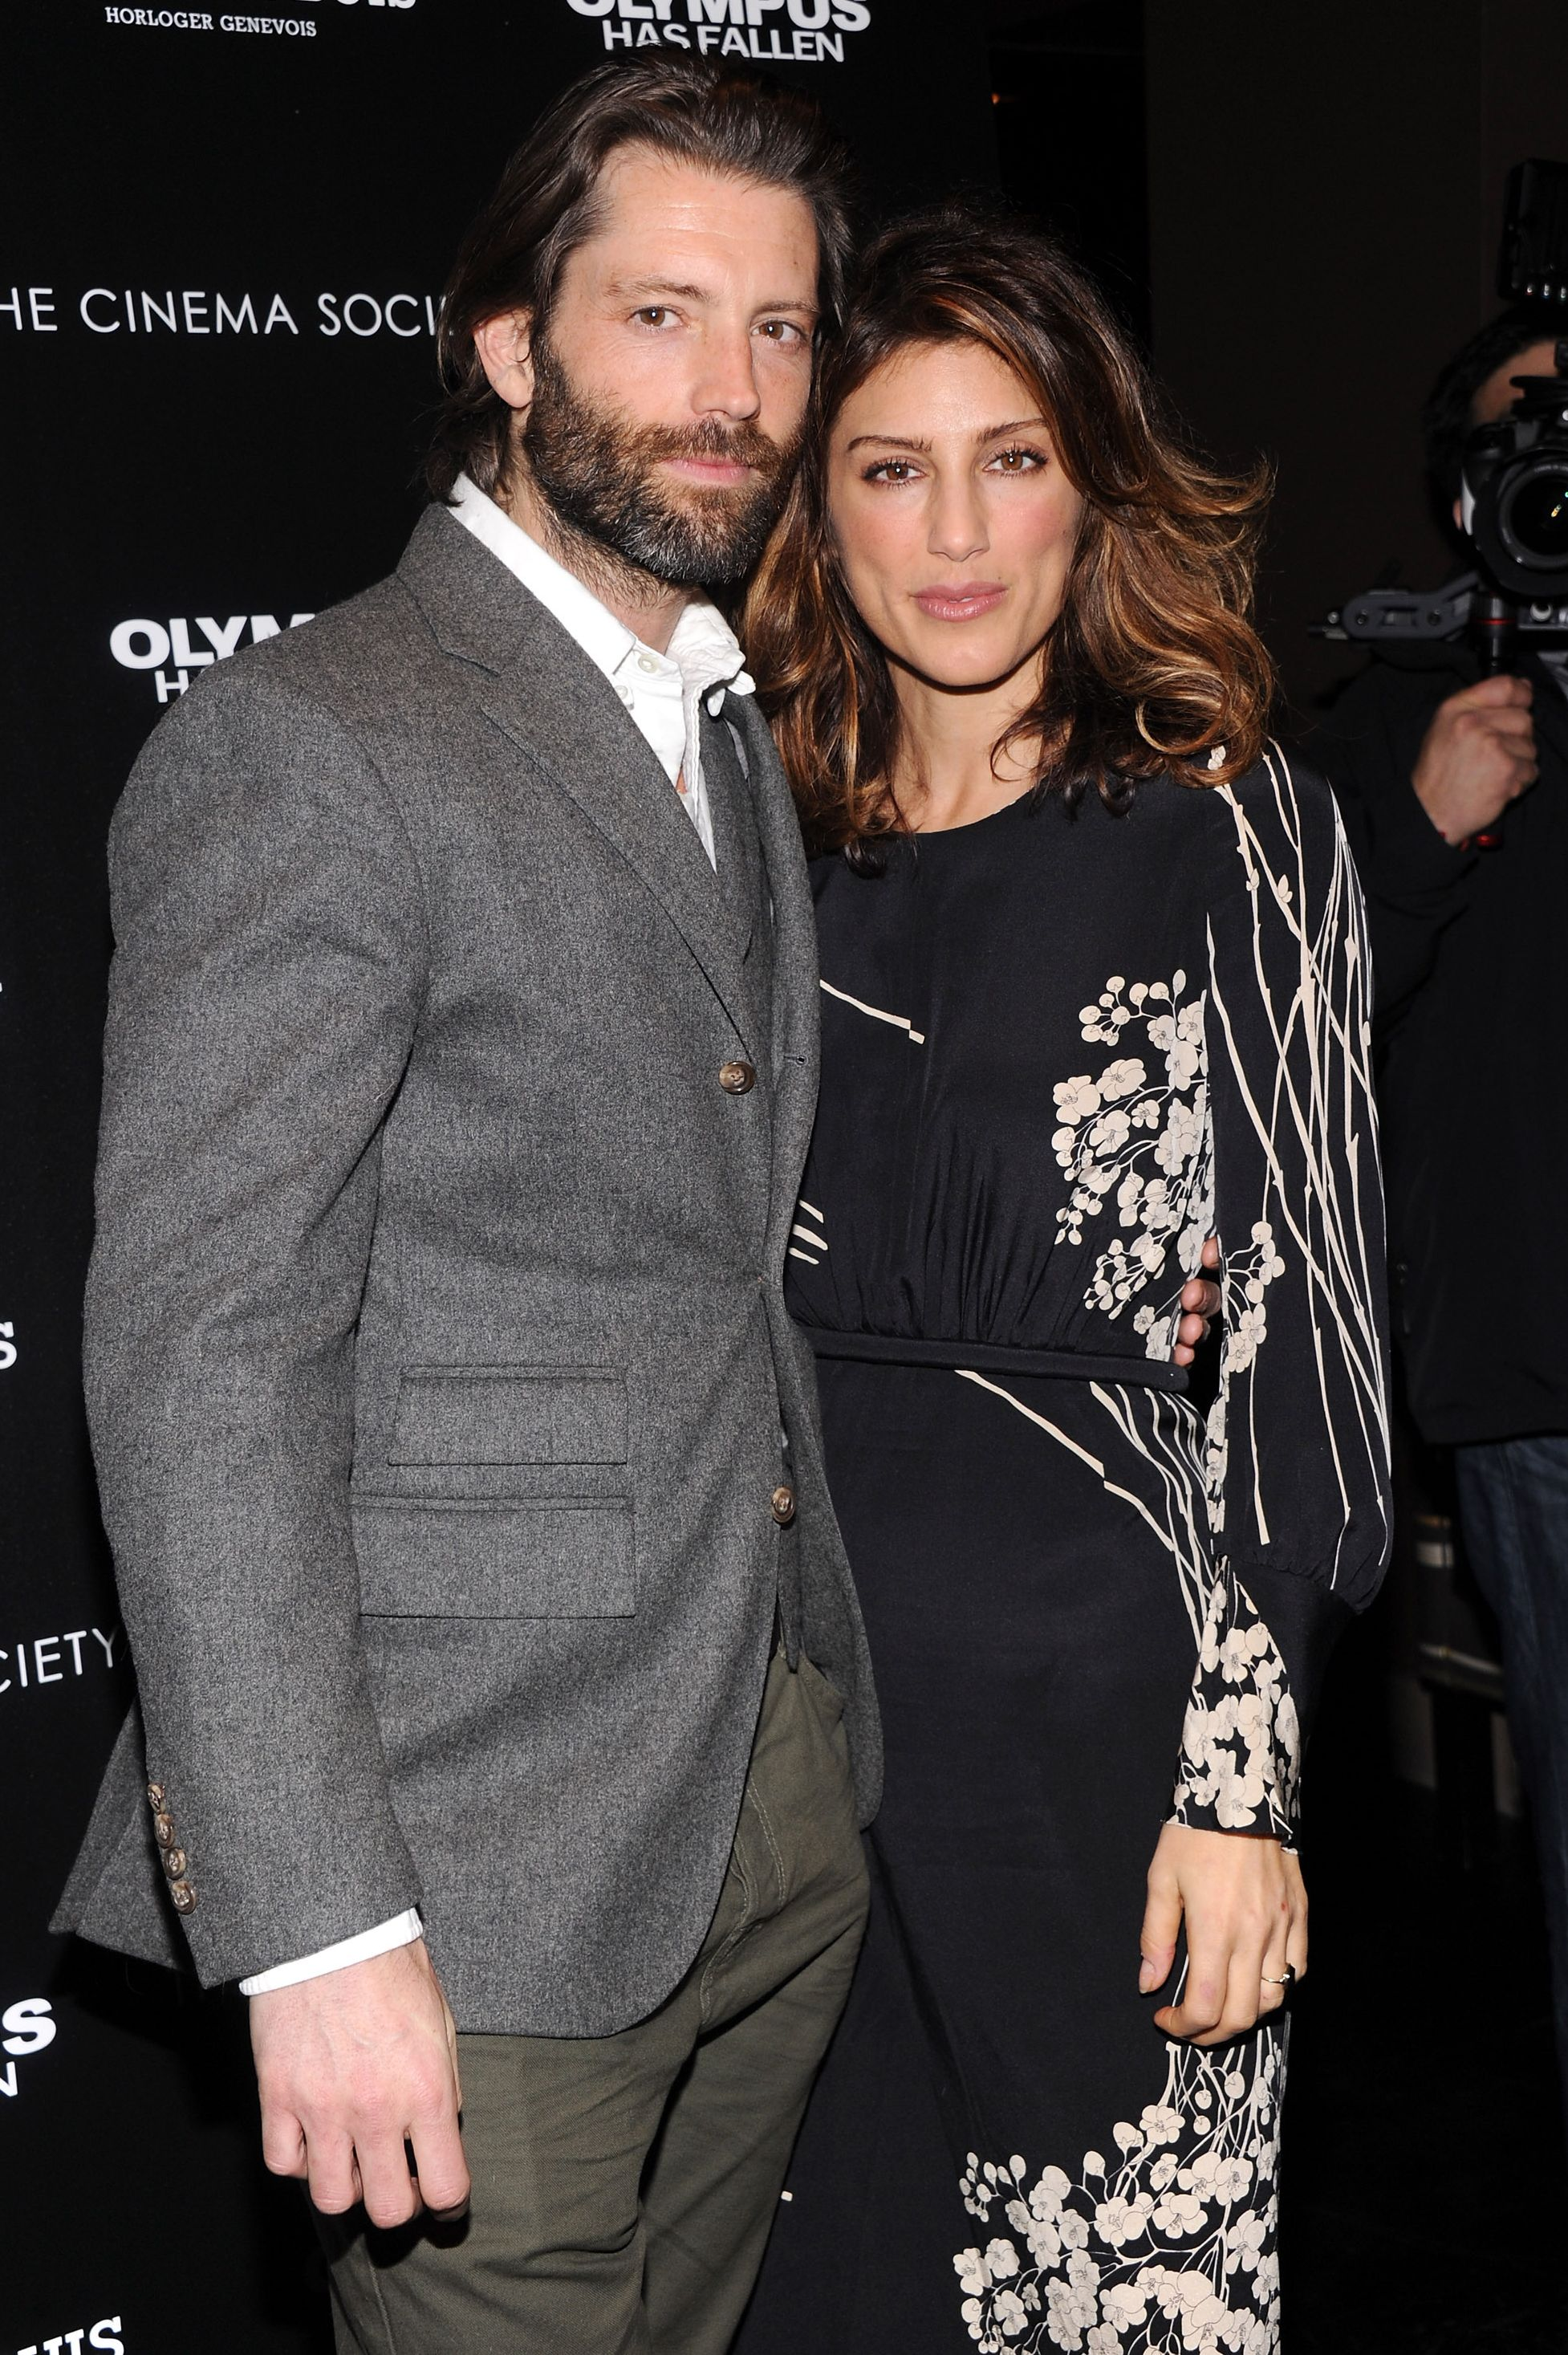 Jennifer Esposito and Louis Dowler There's something about actress Jennifer Esposito and her model husband's eyes that feel all too similar. Doesn't it seem like both of them are starring straight into your soul in this picture?